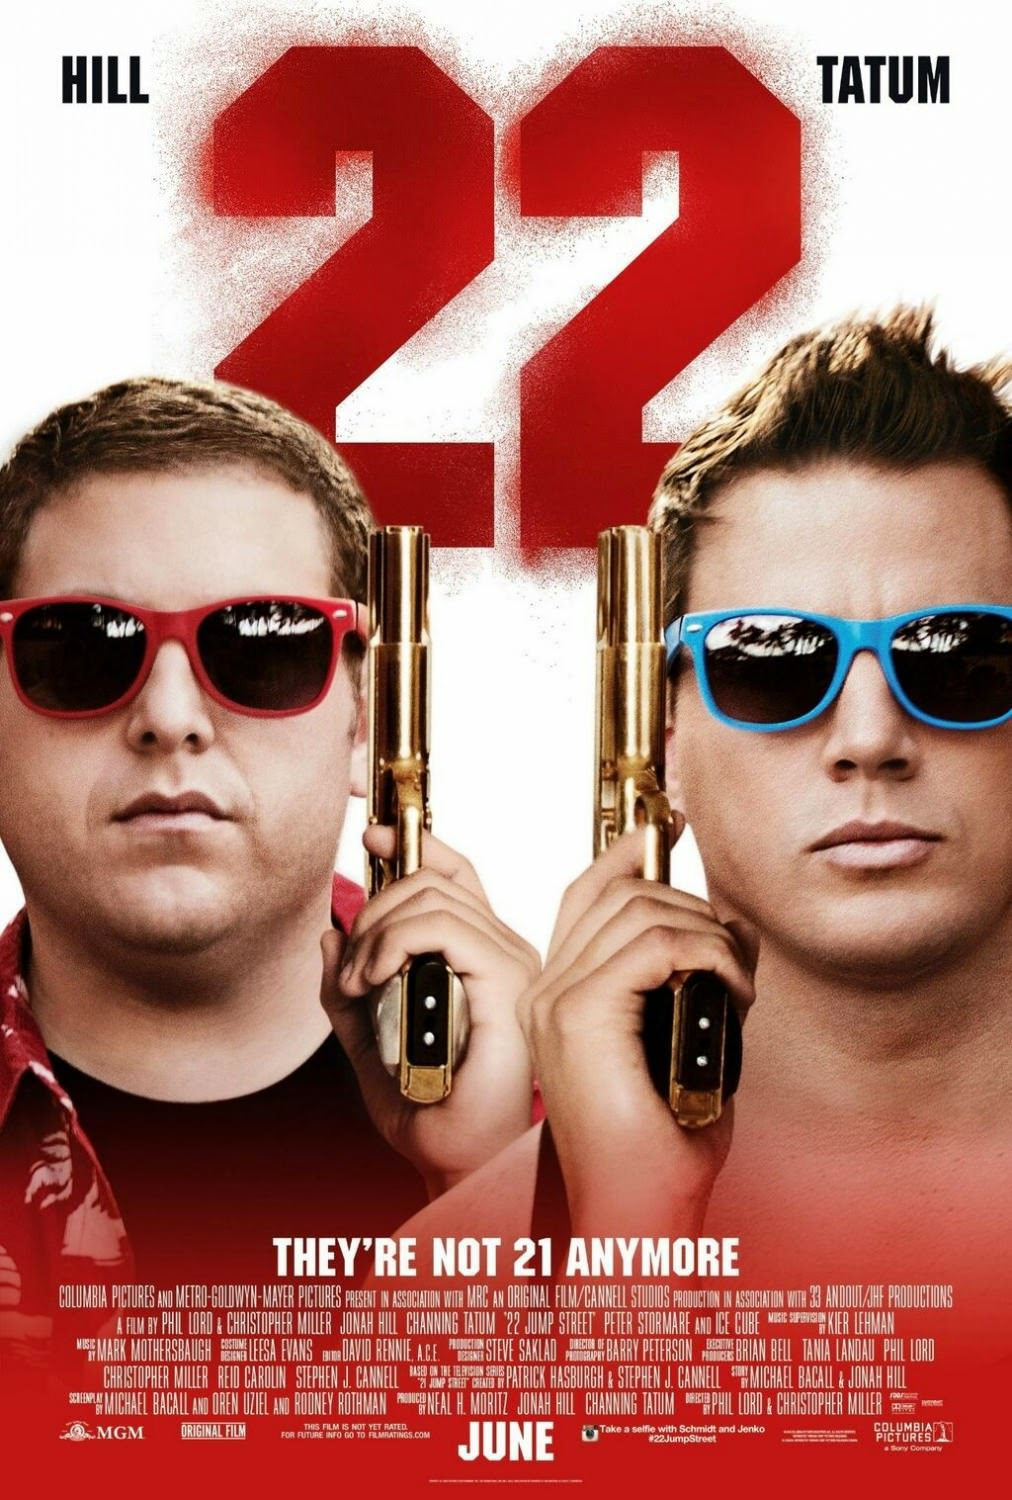 Channing Tatum and Jonah Hill 22 Jump Street